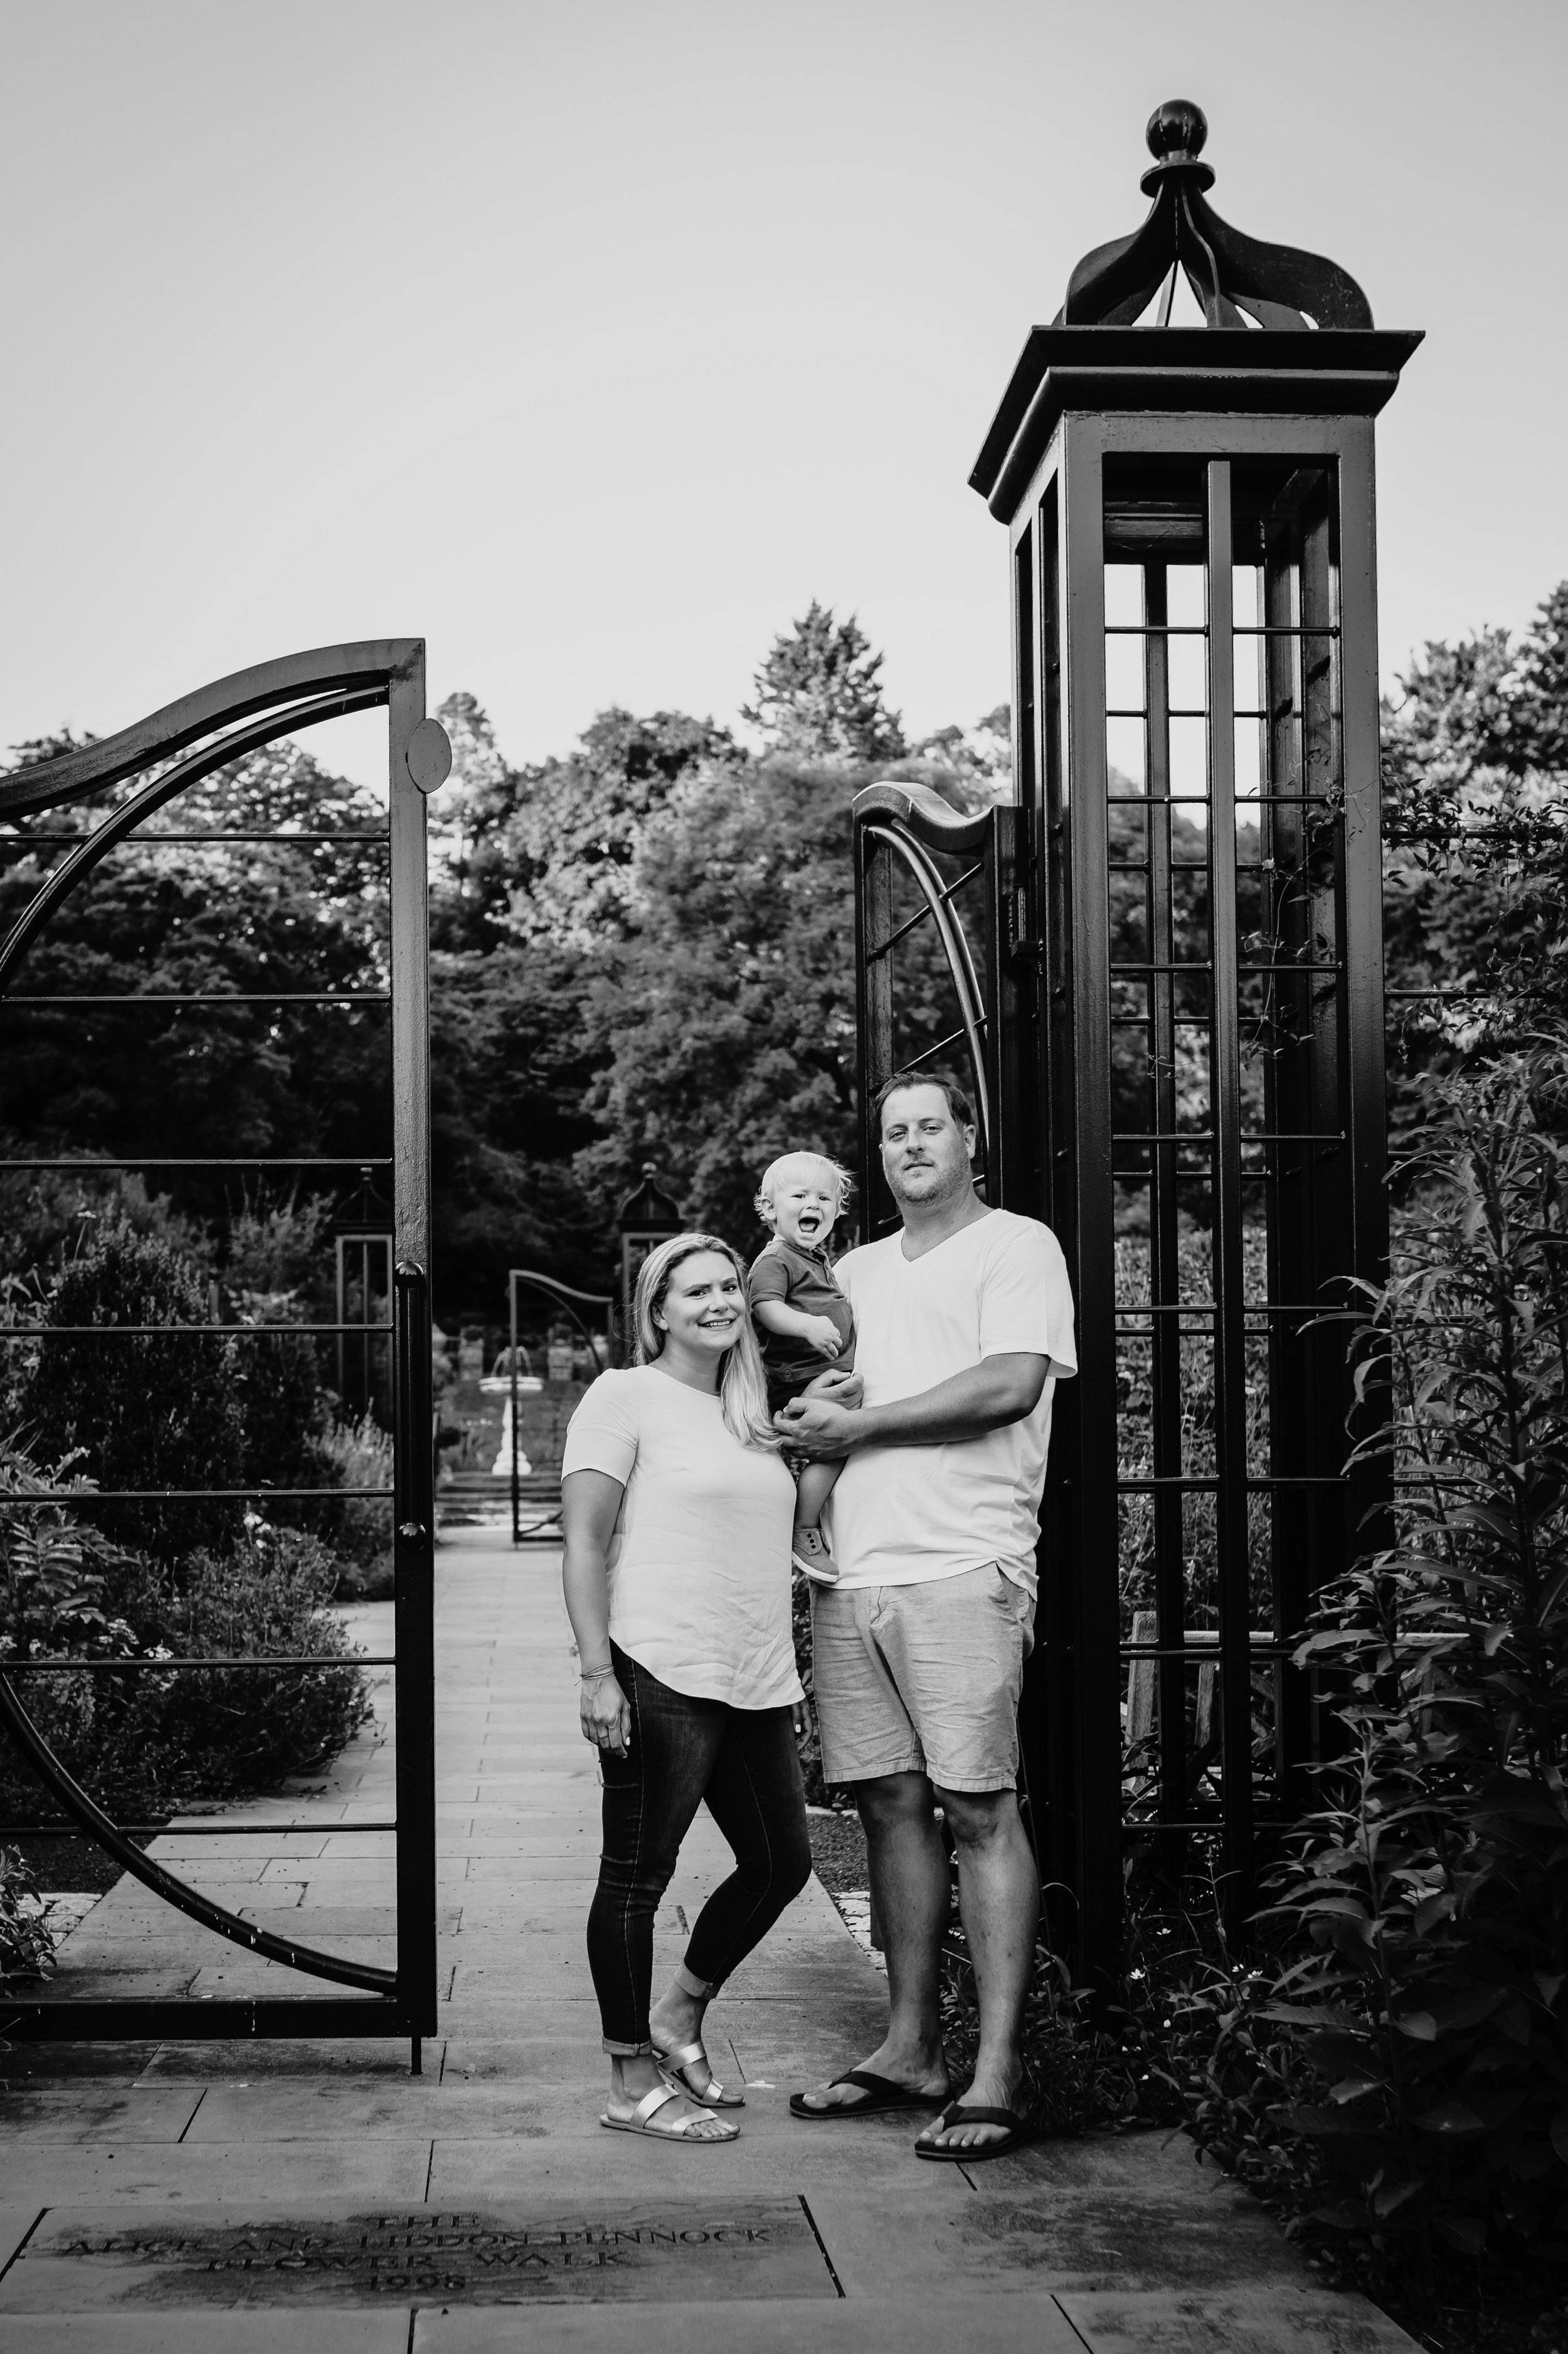 Family Photography Session at Morris Arboretum with Desiree Hoelzle Photography